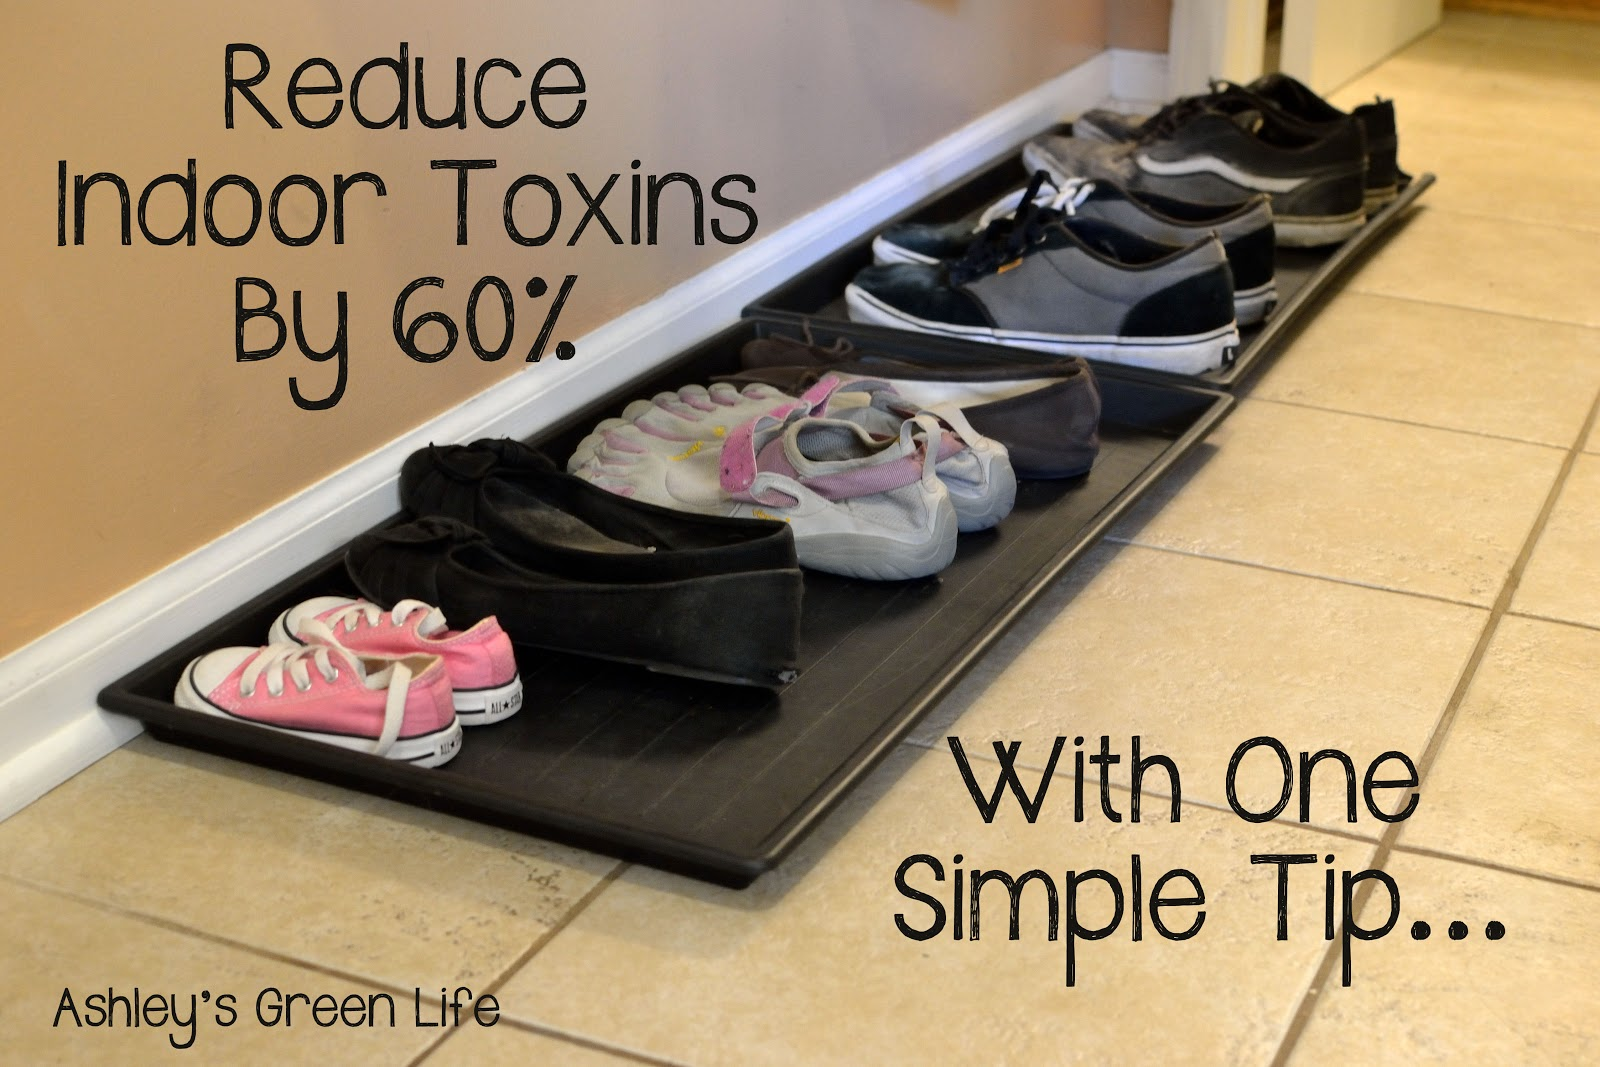 Reduce Indoor Toxins By 60 With One Tip